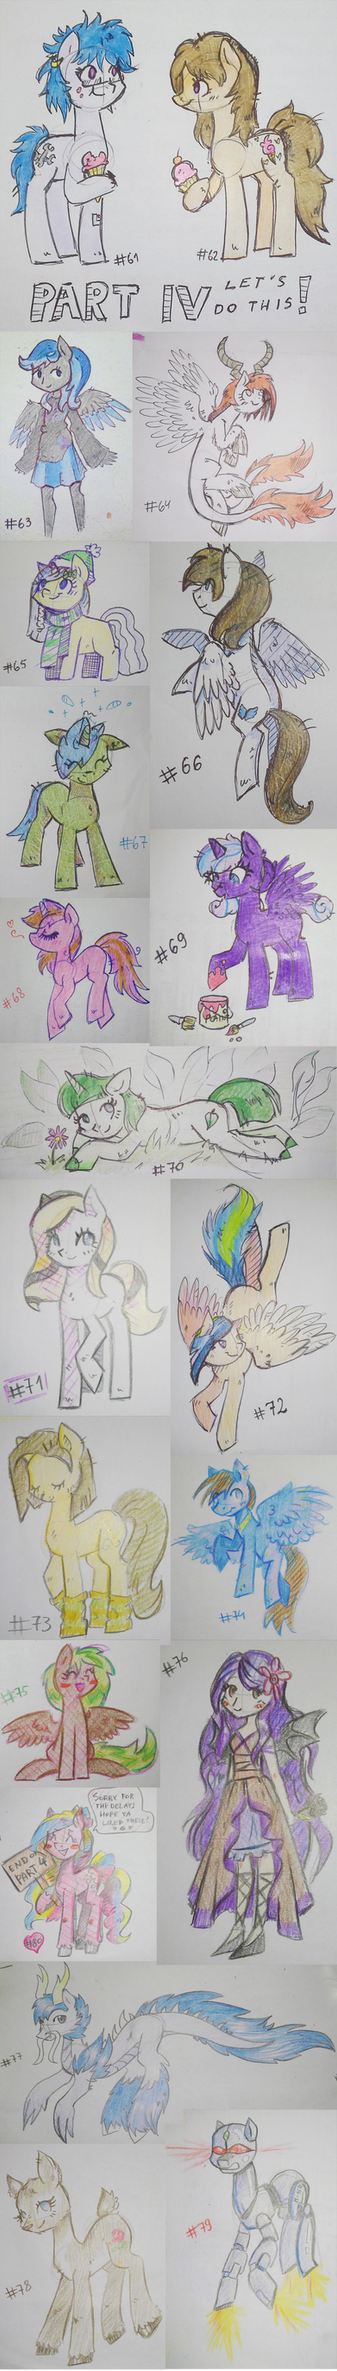 100 free traditional doodles 4/5 by KYAokay